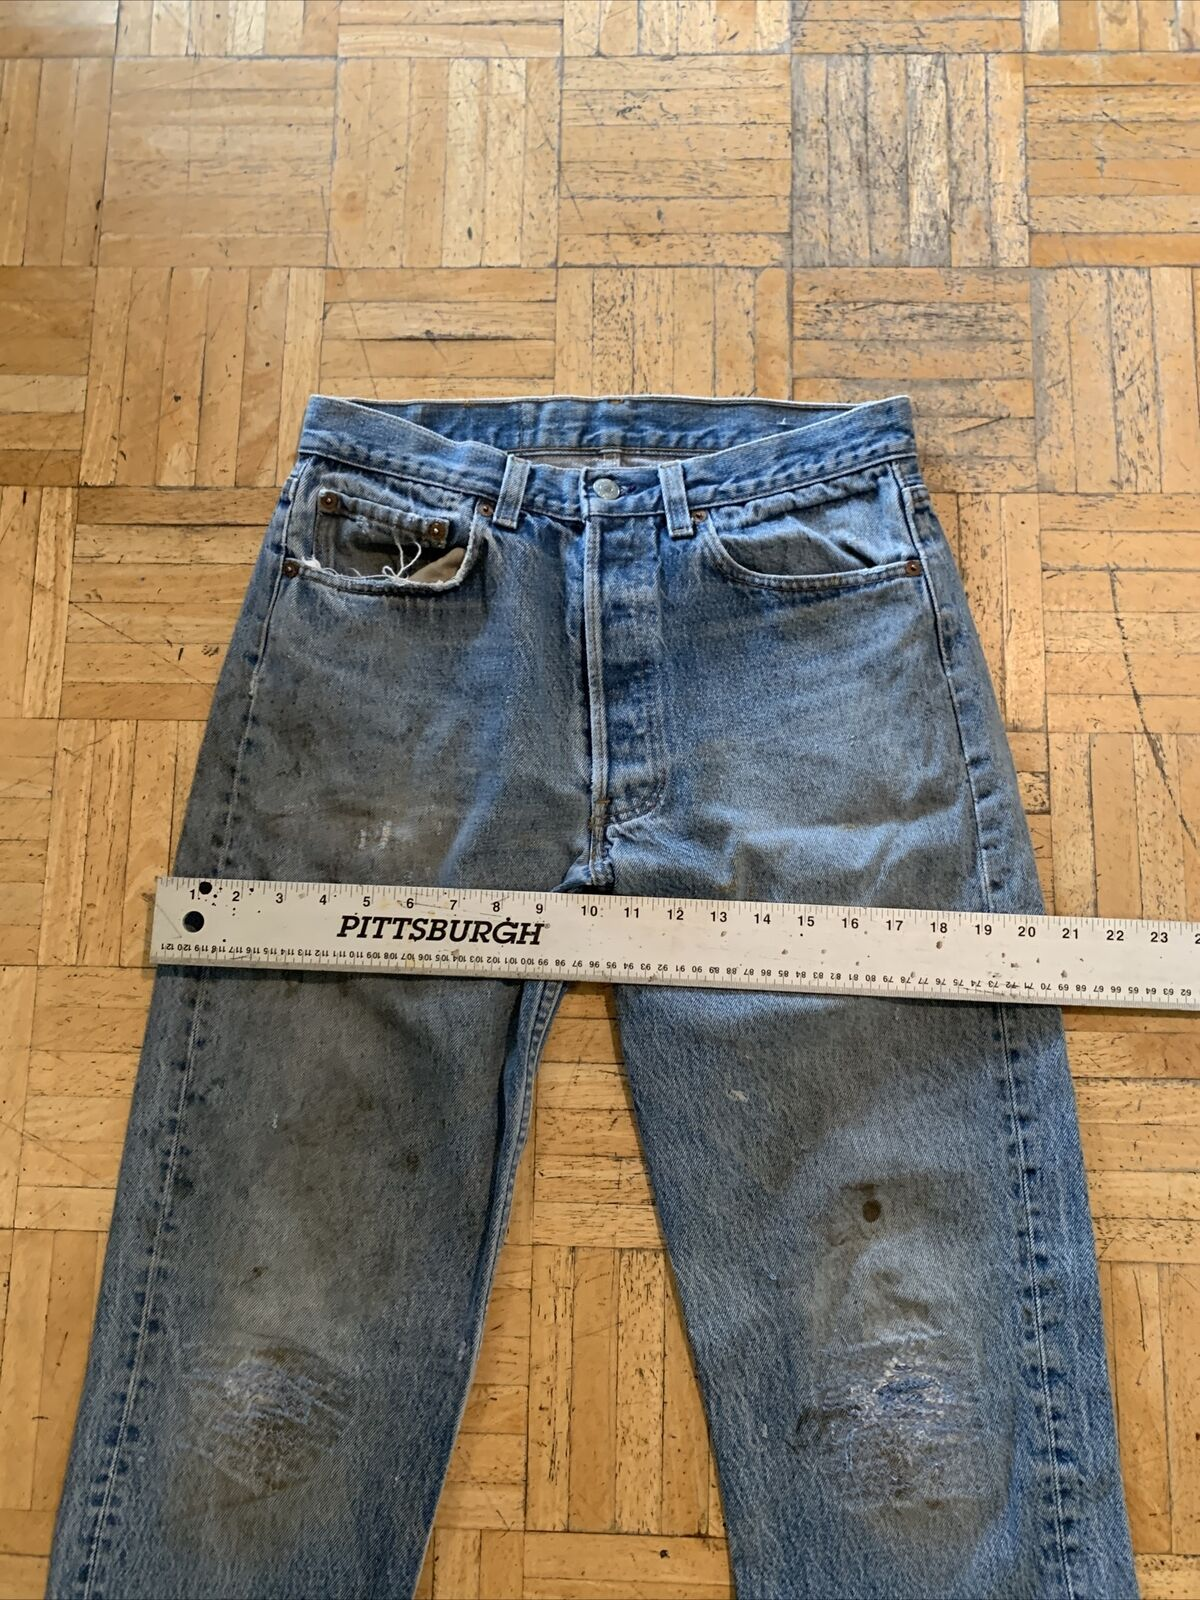 vtg levis 501 made in usa (9) - image 3